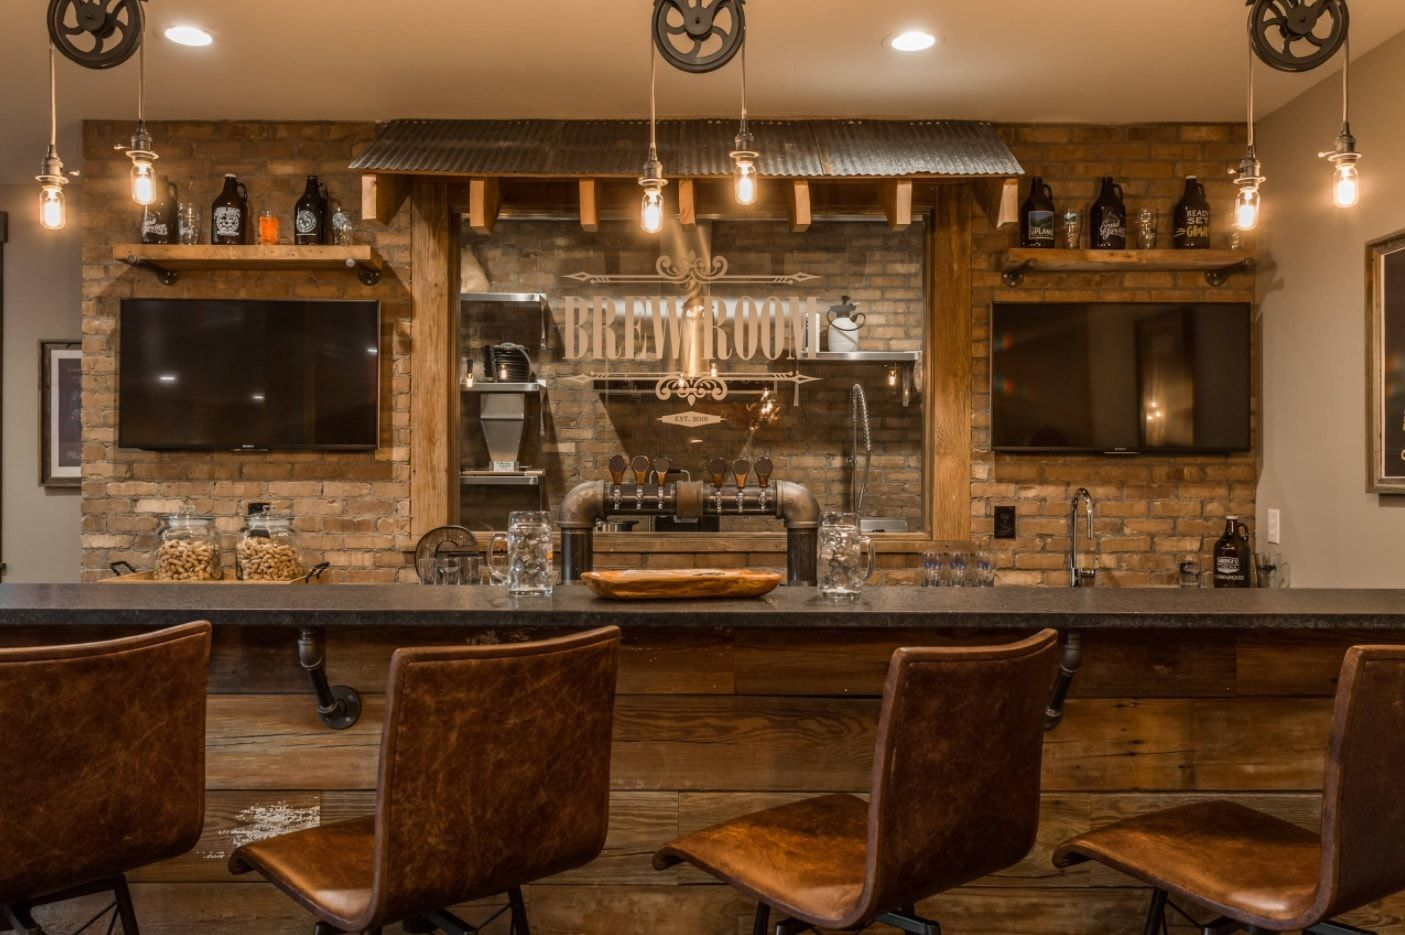 Wooden trimmed Rustic styled mini-bar with brew at the ground level